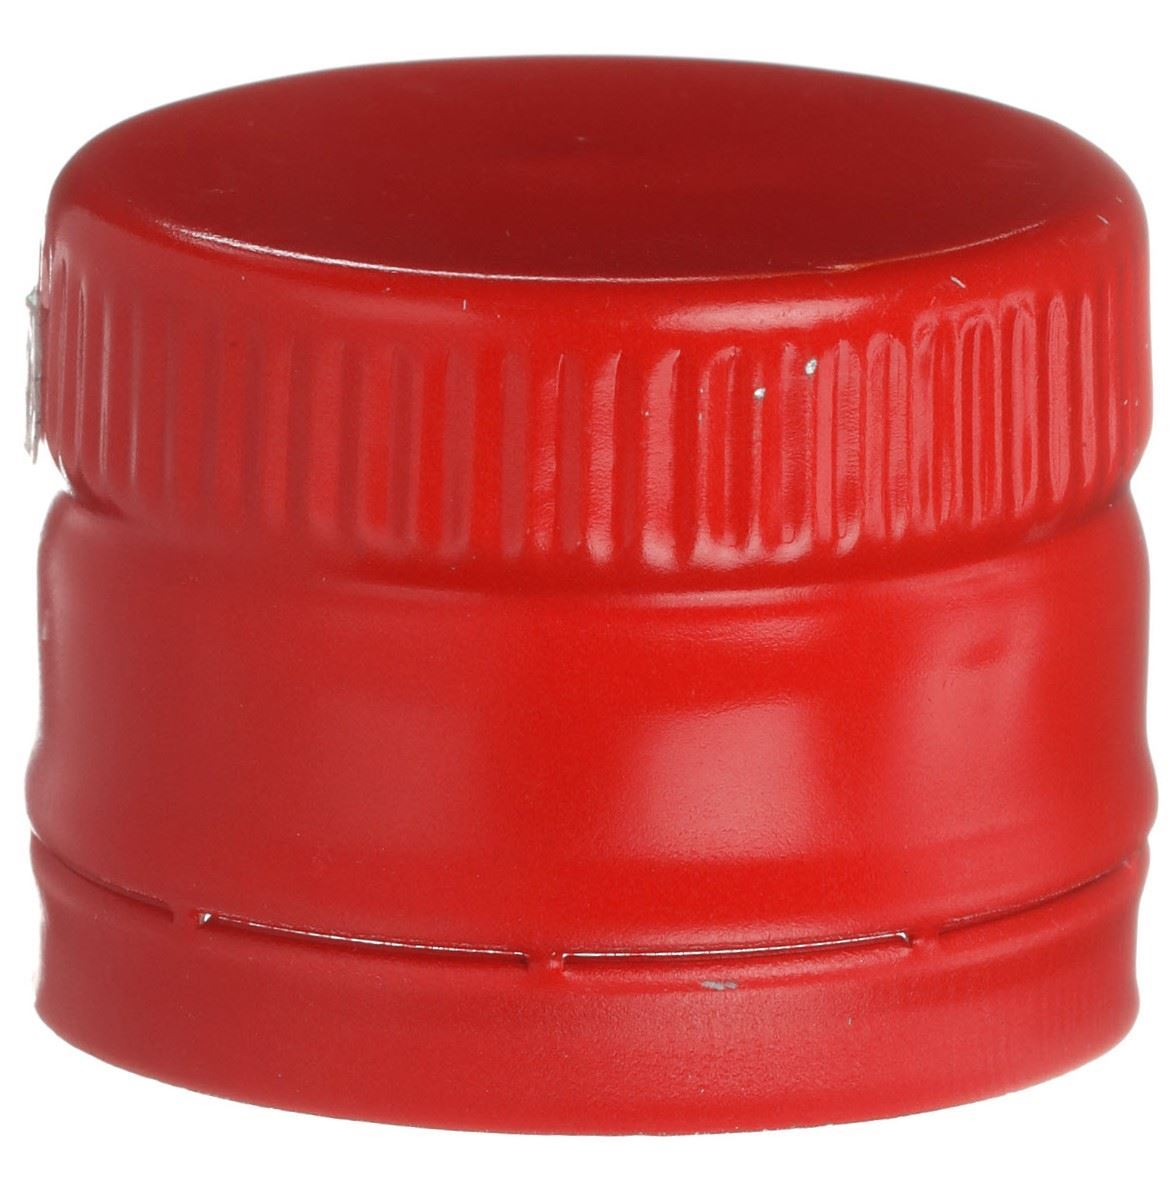 31 5 mm ROPP Tamper Evident Red Aluminum Closure - Includes SnapOn Pour  Fitment